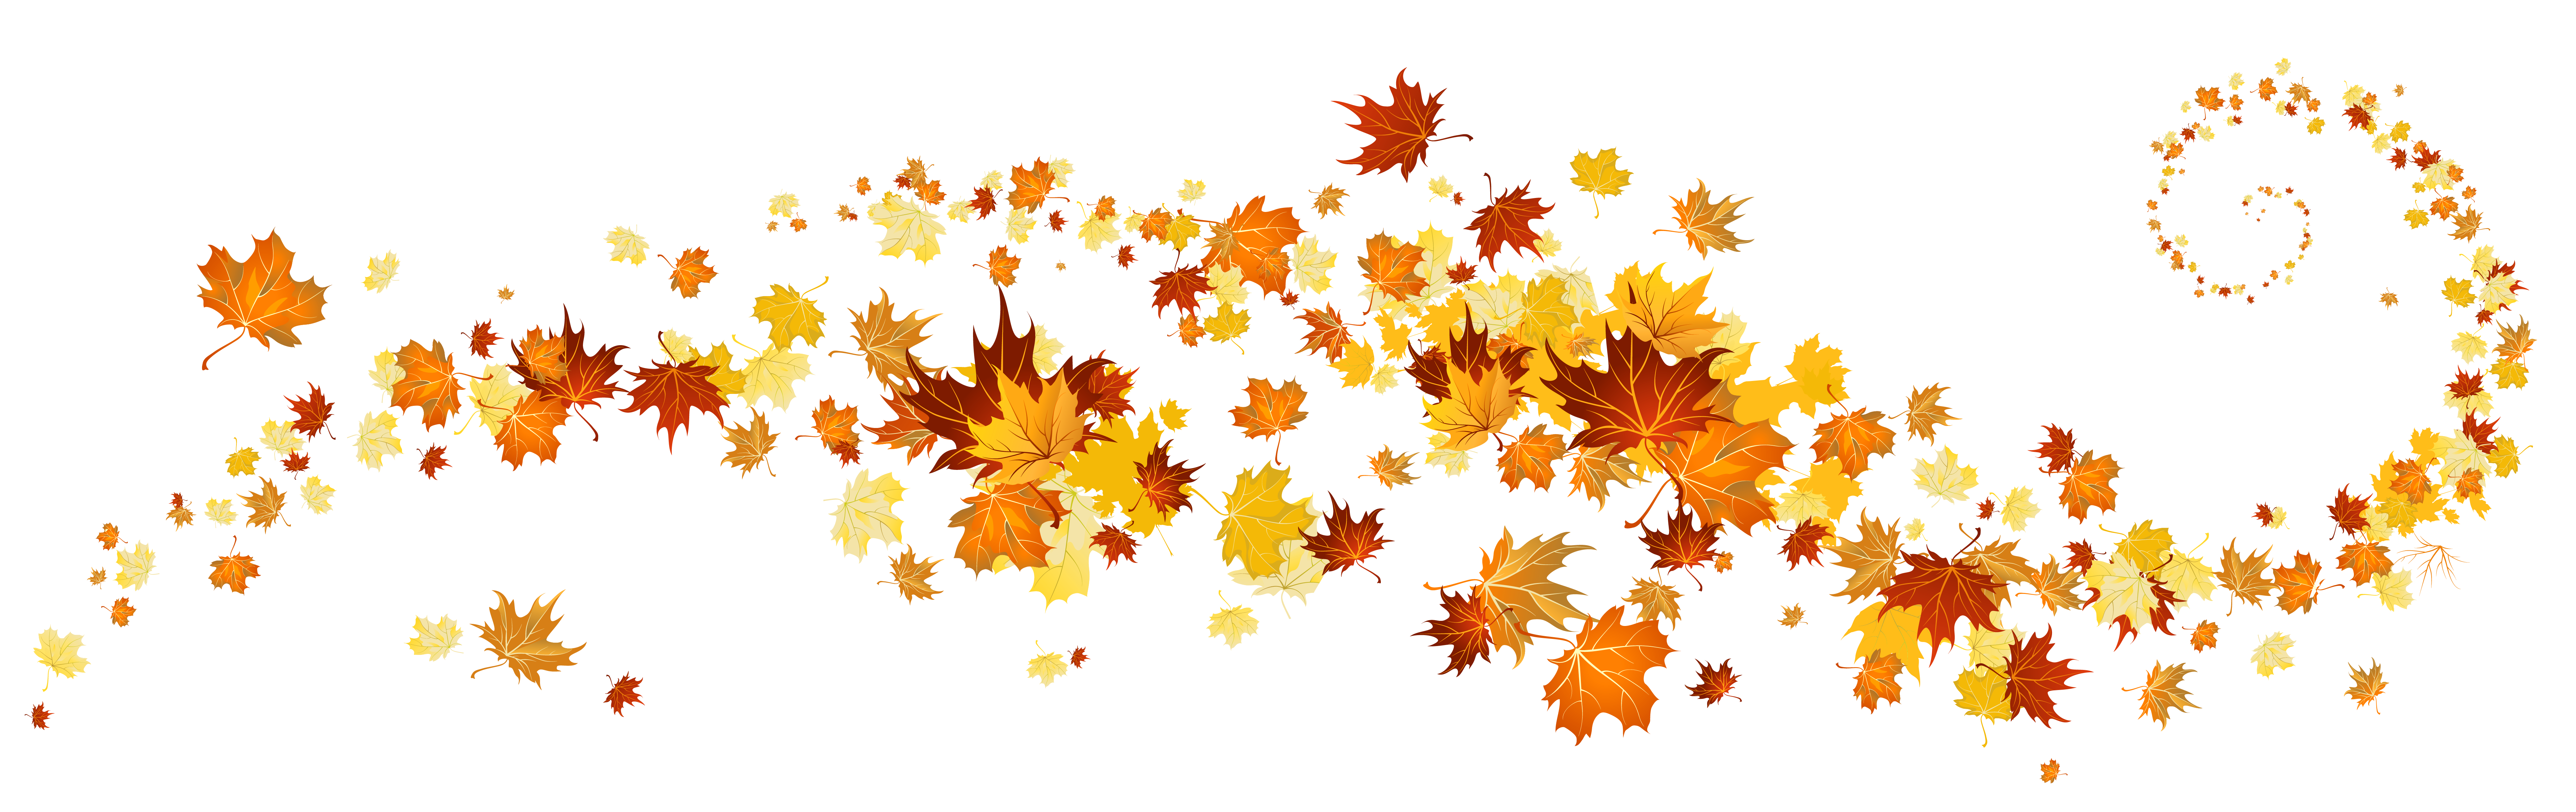 Orange and red fall leaves, attractively swirling